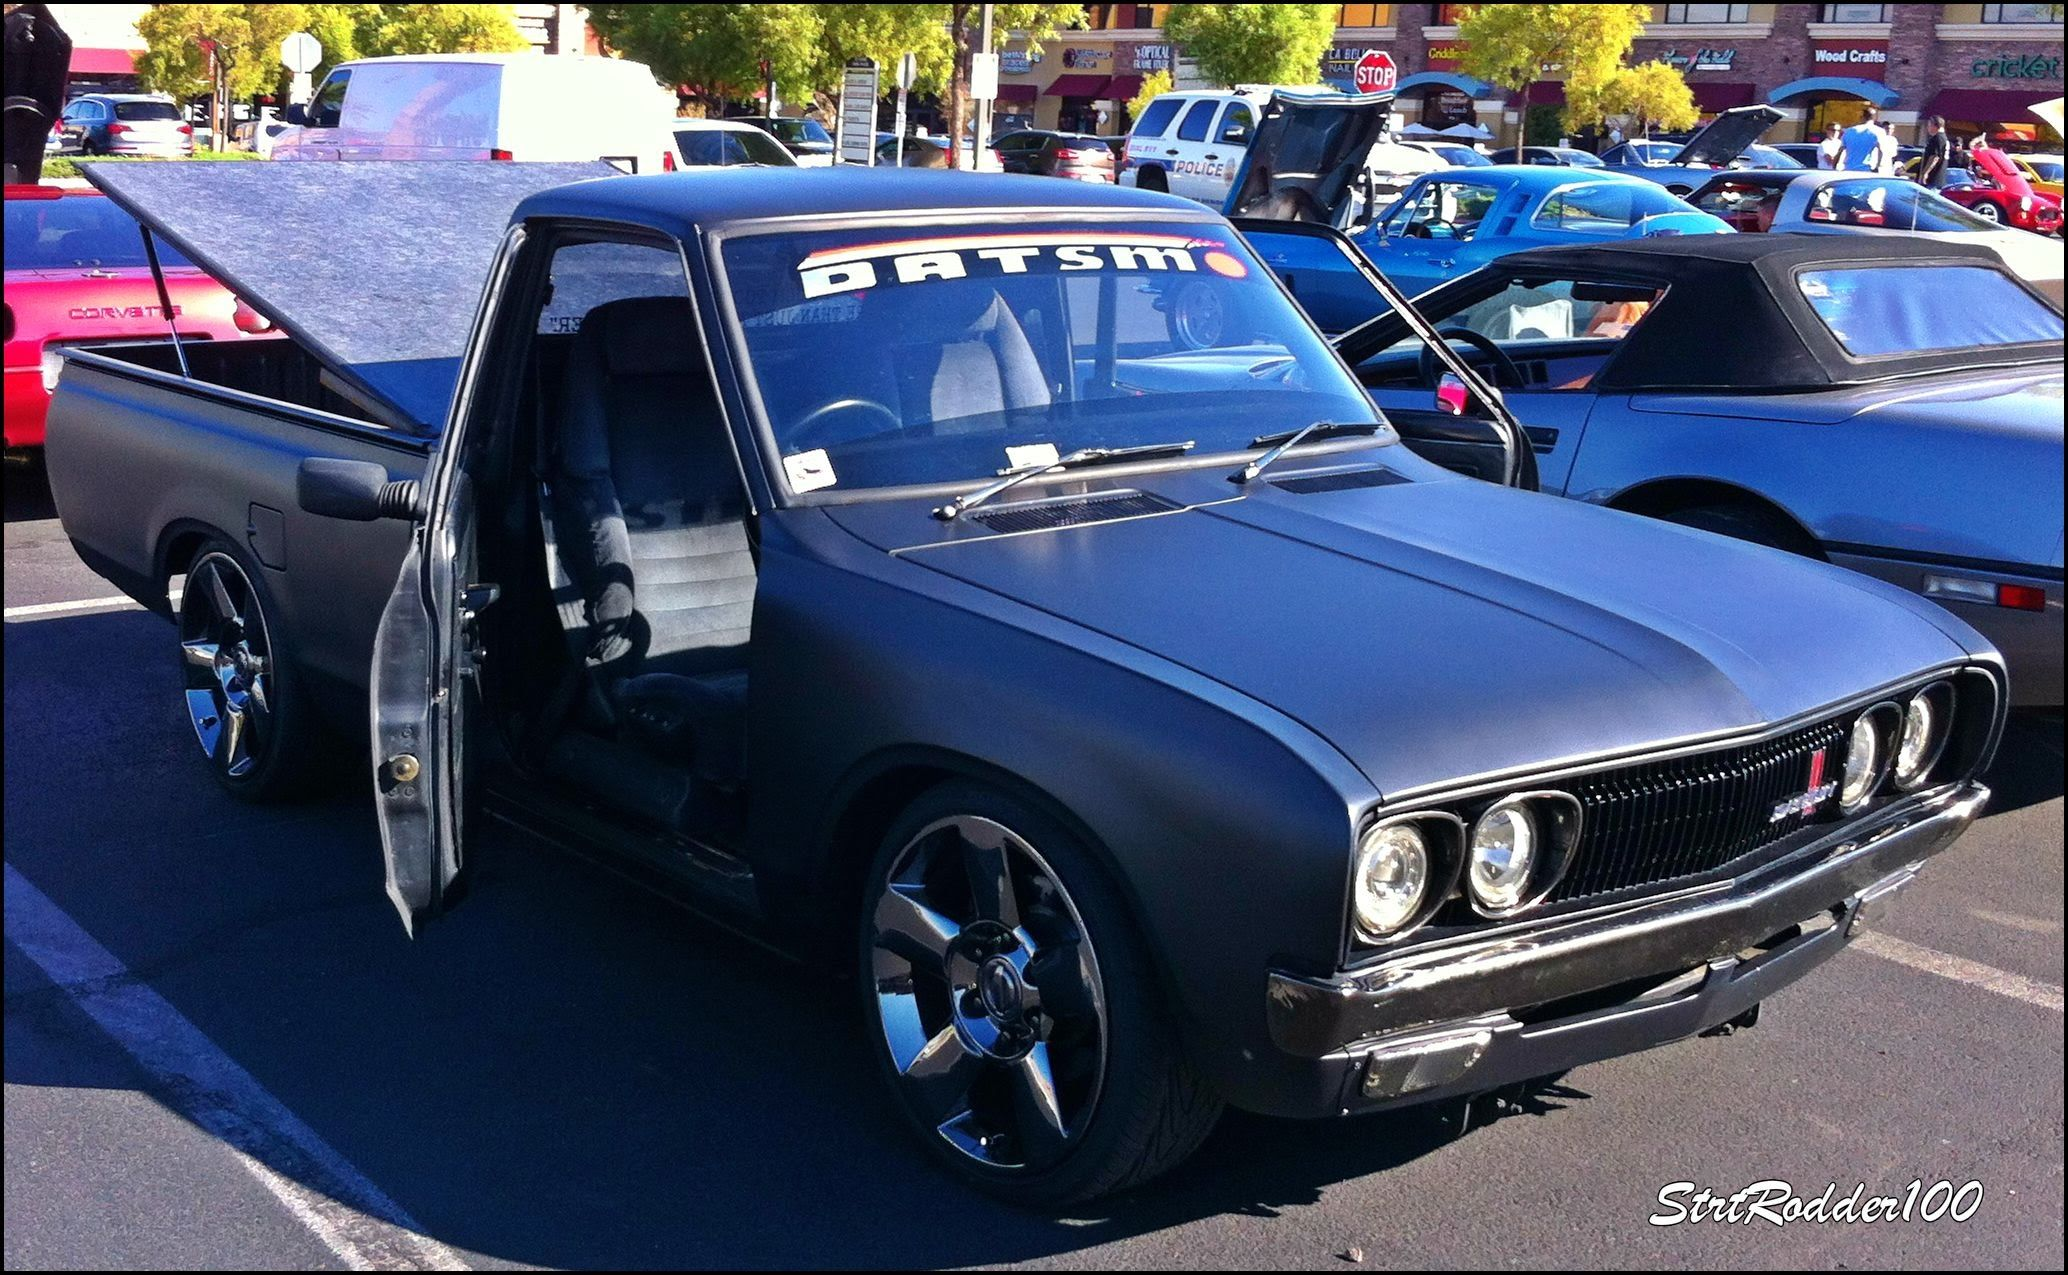 76 datsun pickups for sale the datsun 620 is one of the most beautiful - Http Www Strictlyforeign Biz Default Asp 1974 Datsun 620